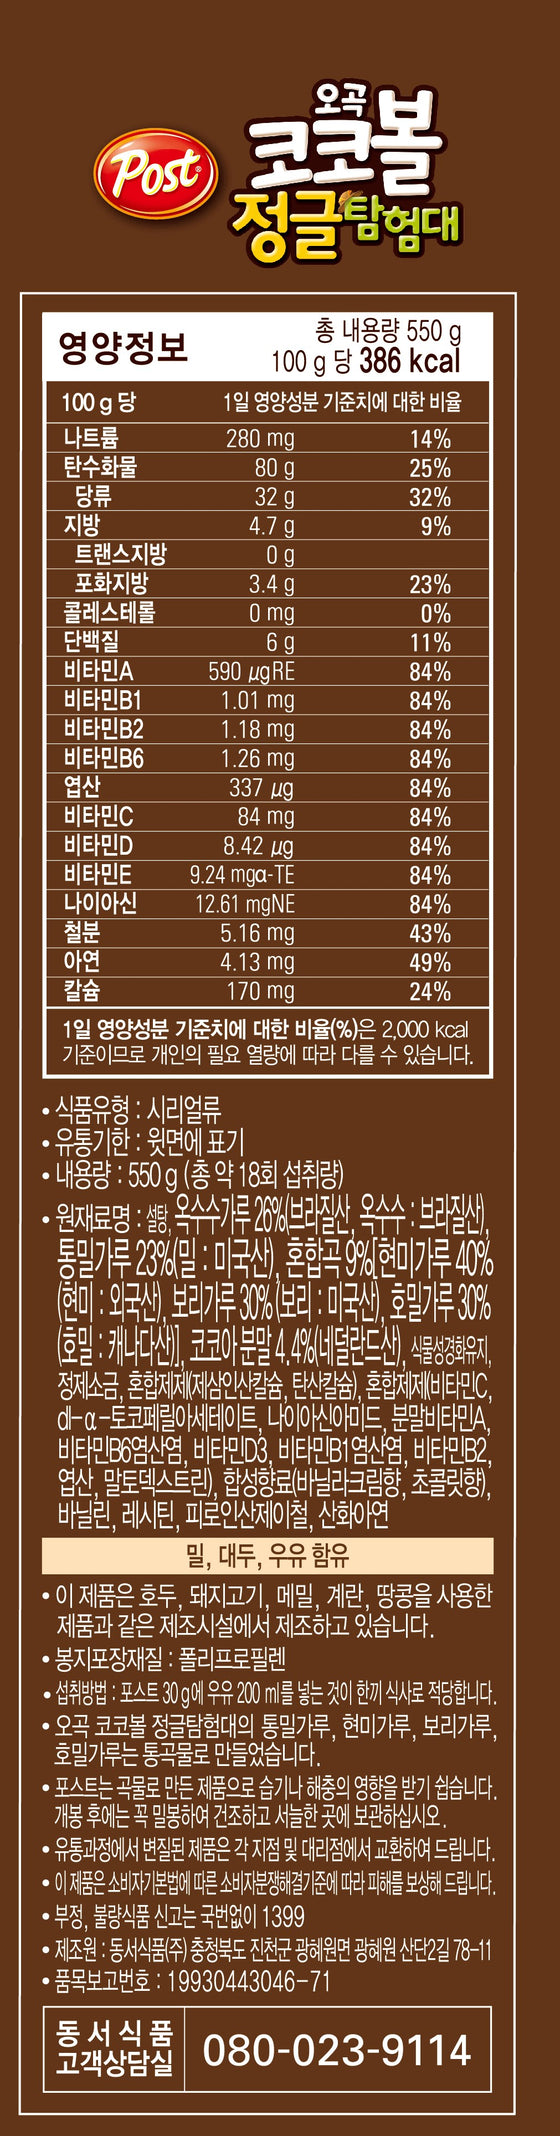 Dongseo Post Five Grain Coco Ball Jungle Cereal (300g) - CoKoYam